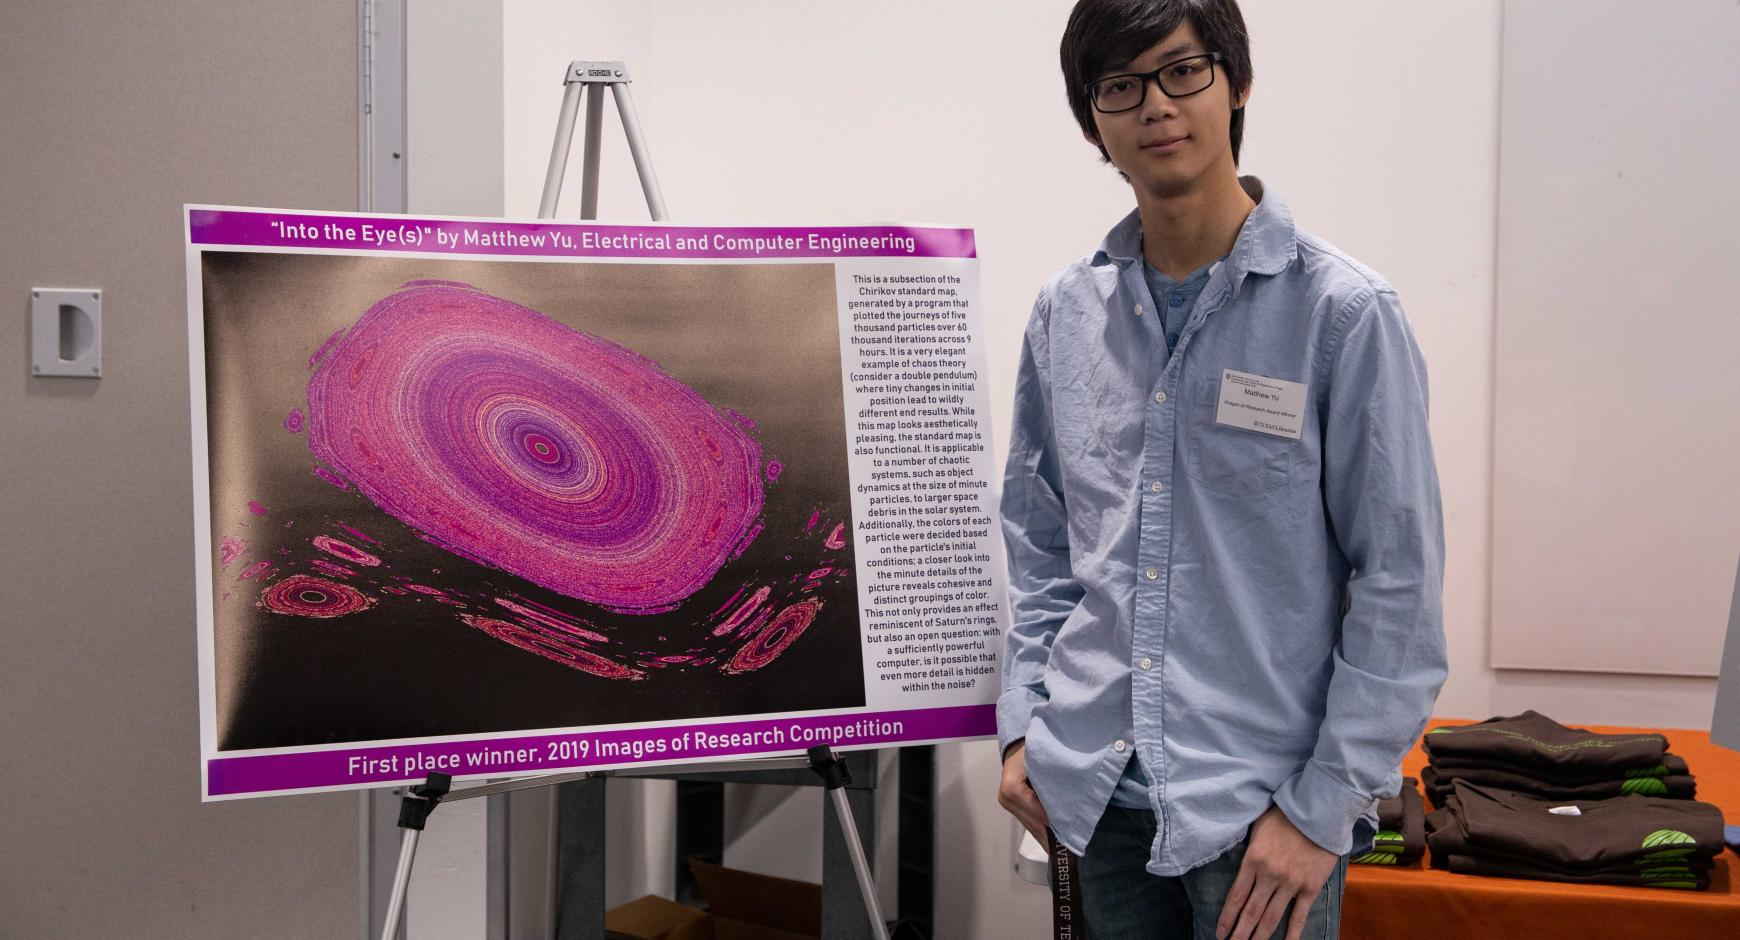 Matthew Yu with his winning entry.